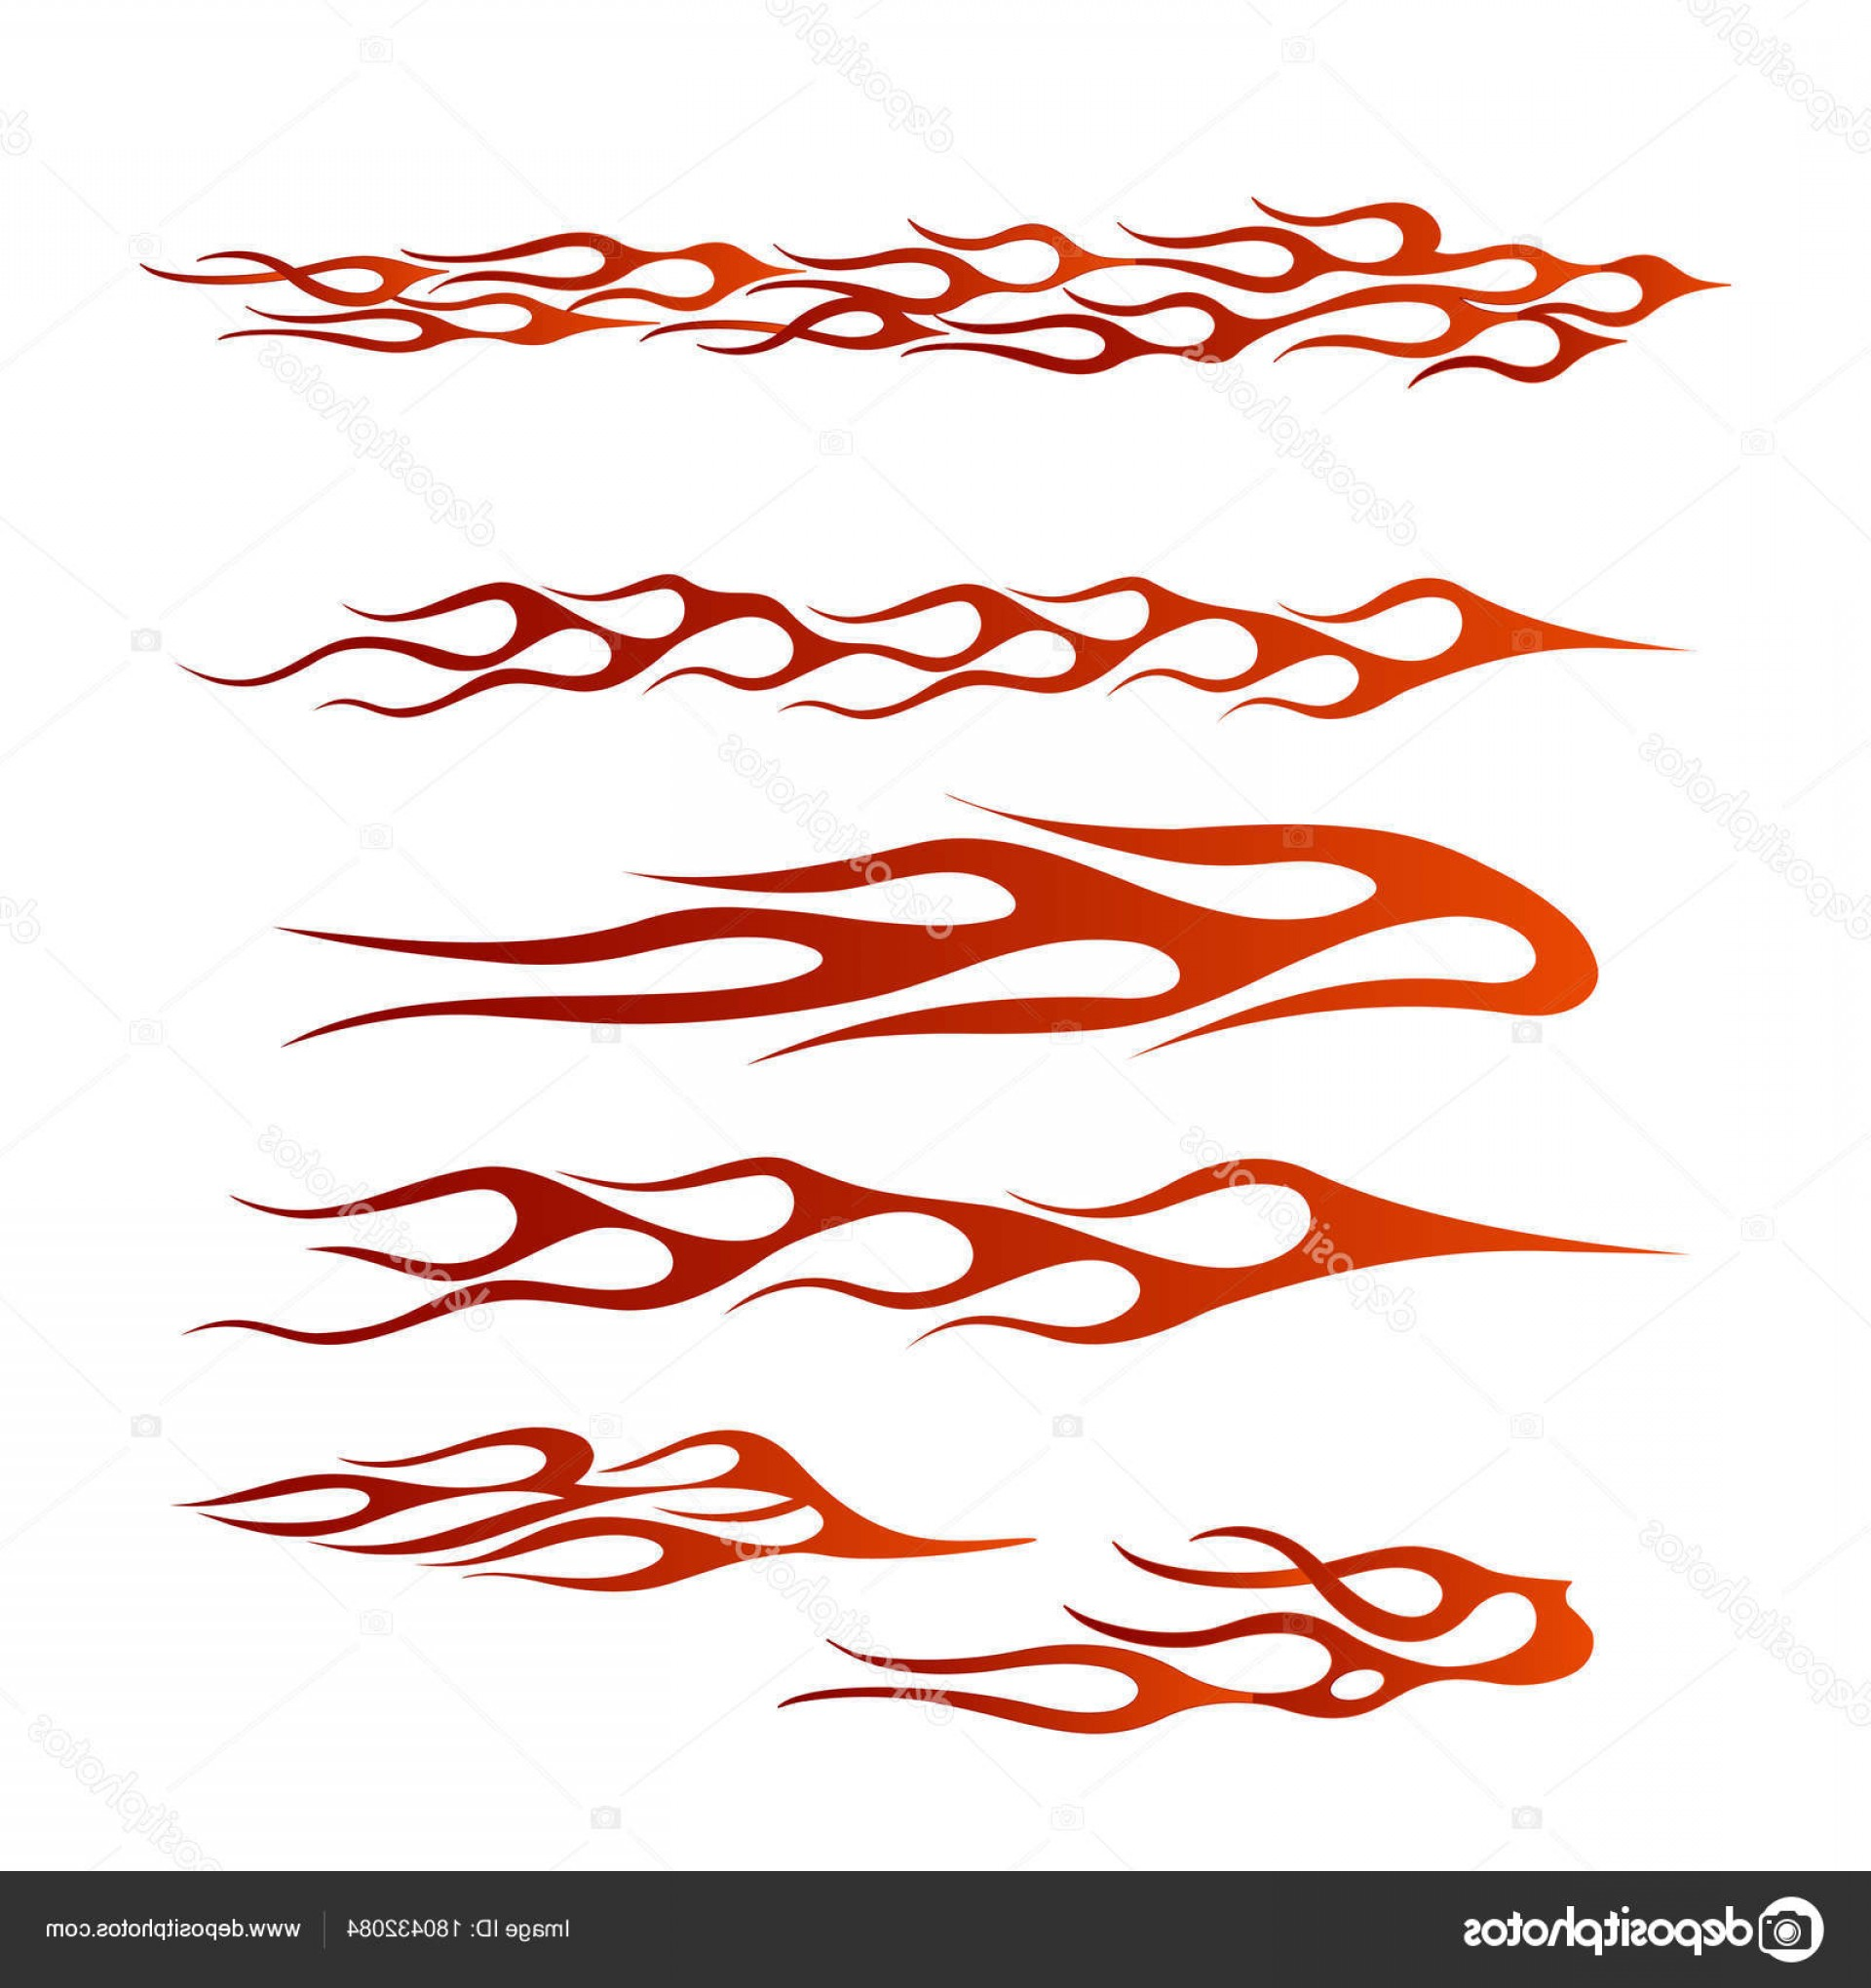 Tribal Flames Vector Car: Stock Illustration Tribal Vehicle Graphic Flame Vehicle